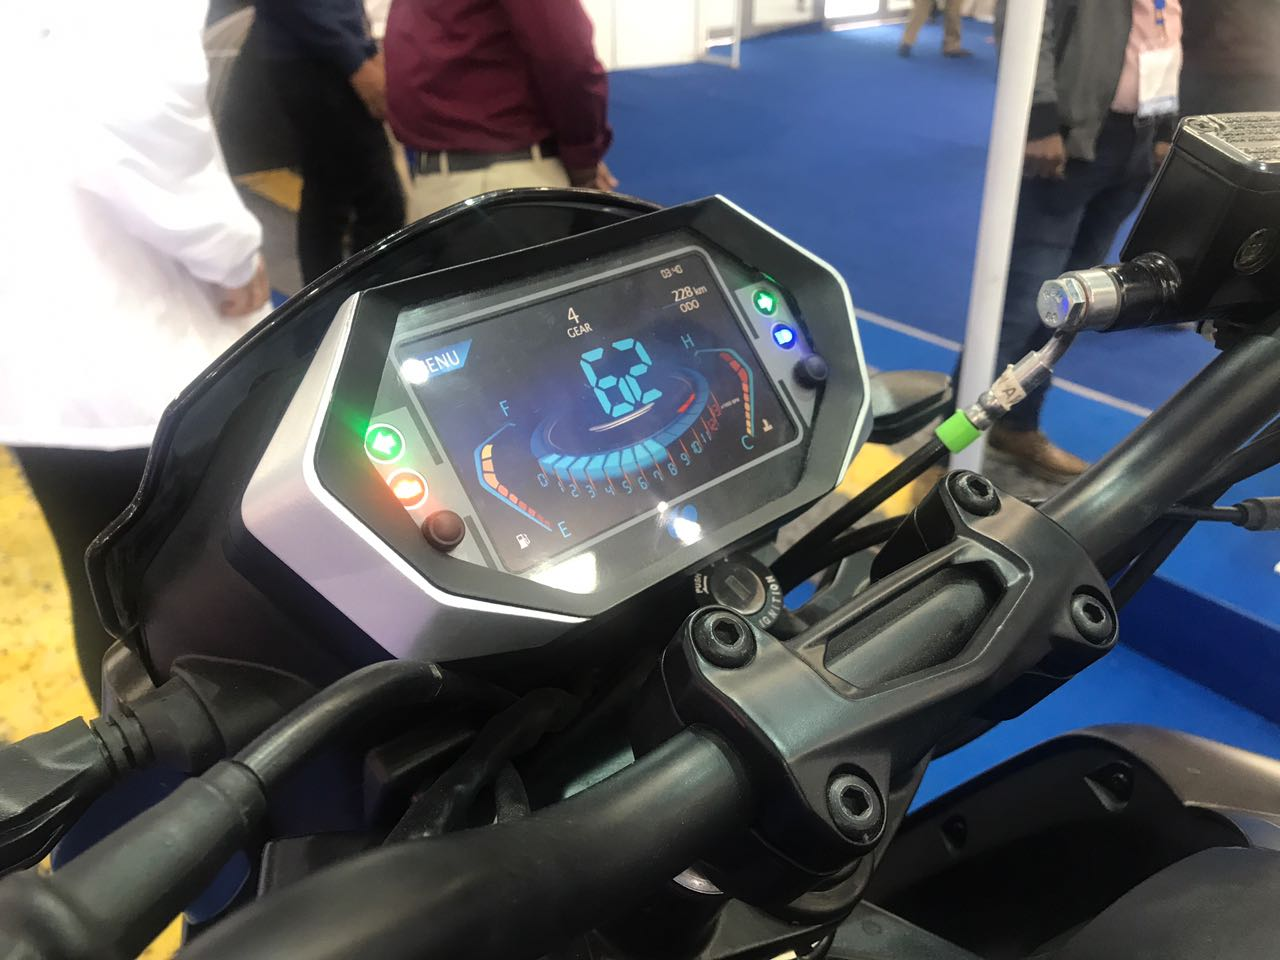 <p>TFT cluster (not production ready) that offers info on navigation, music, phone and also digital display of motorcycle info.</p>